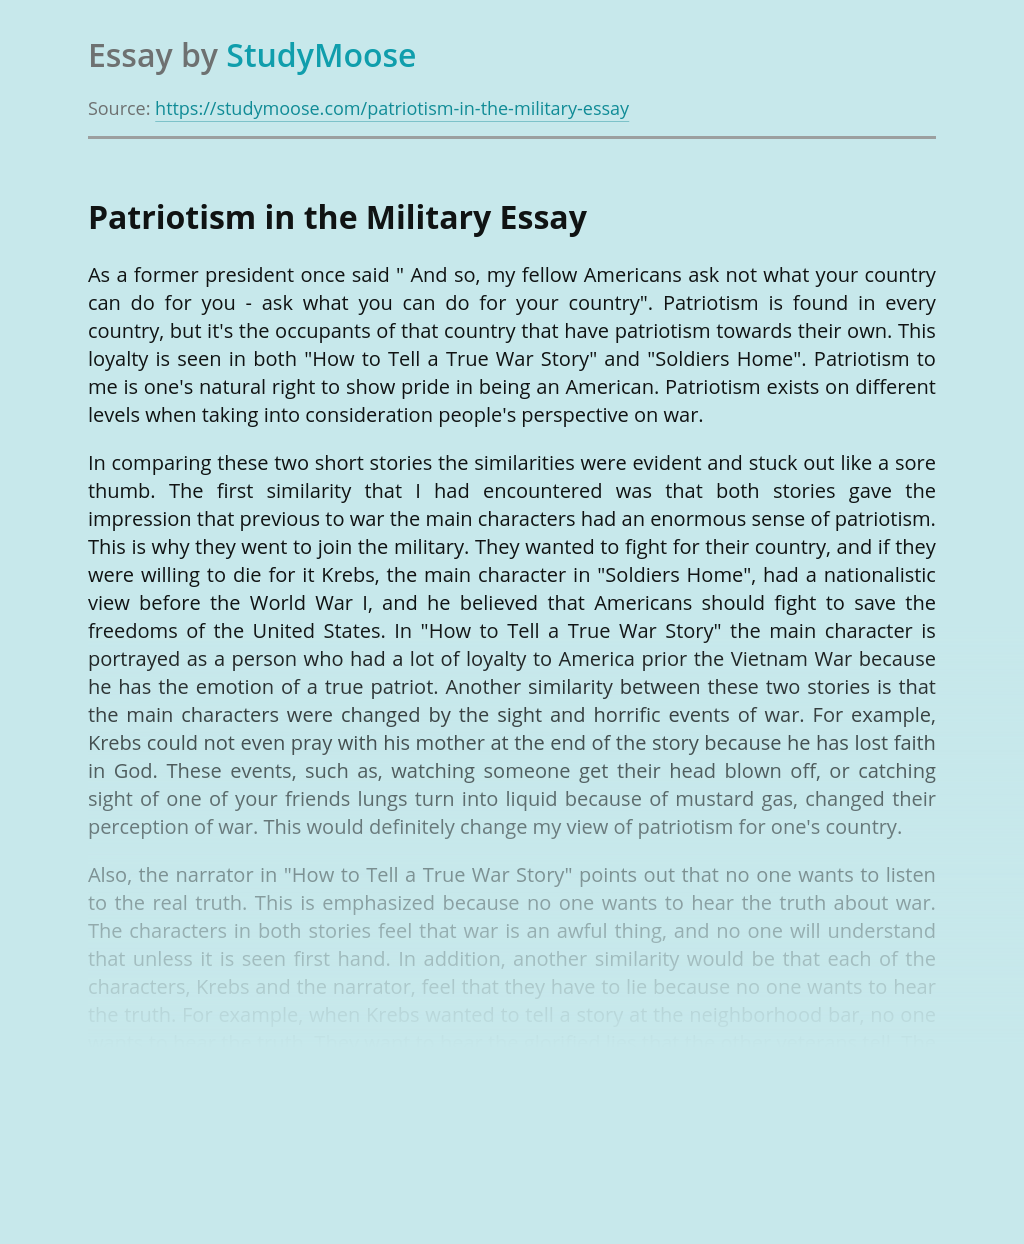 Patriotism in the Military